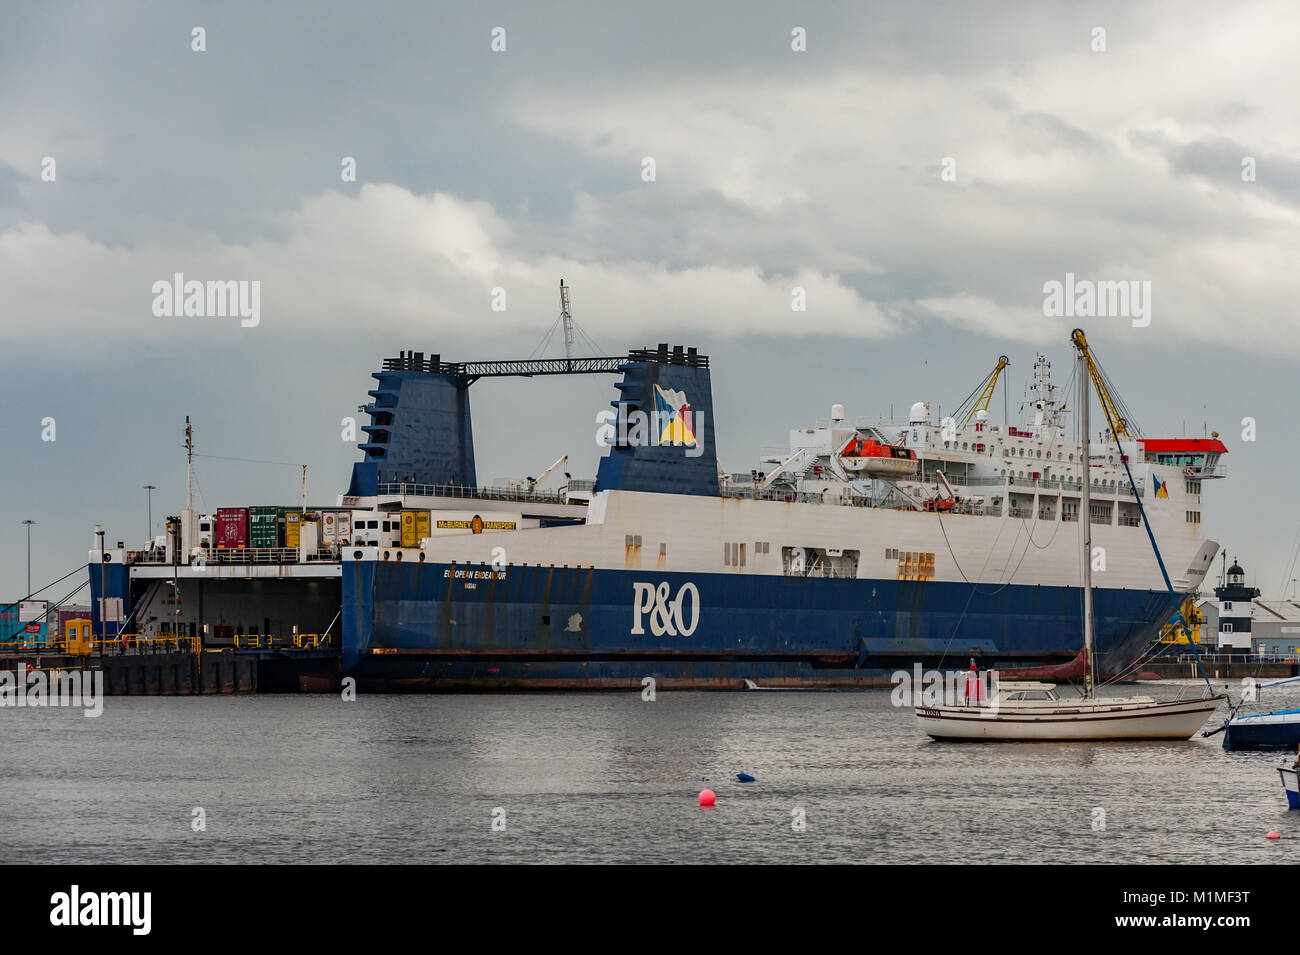 P&O Ro-Ro ferry 'European Endeavour' moored at Dublin Docks, Ireland before departure with copy space. - Stock Image